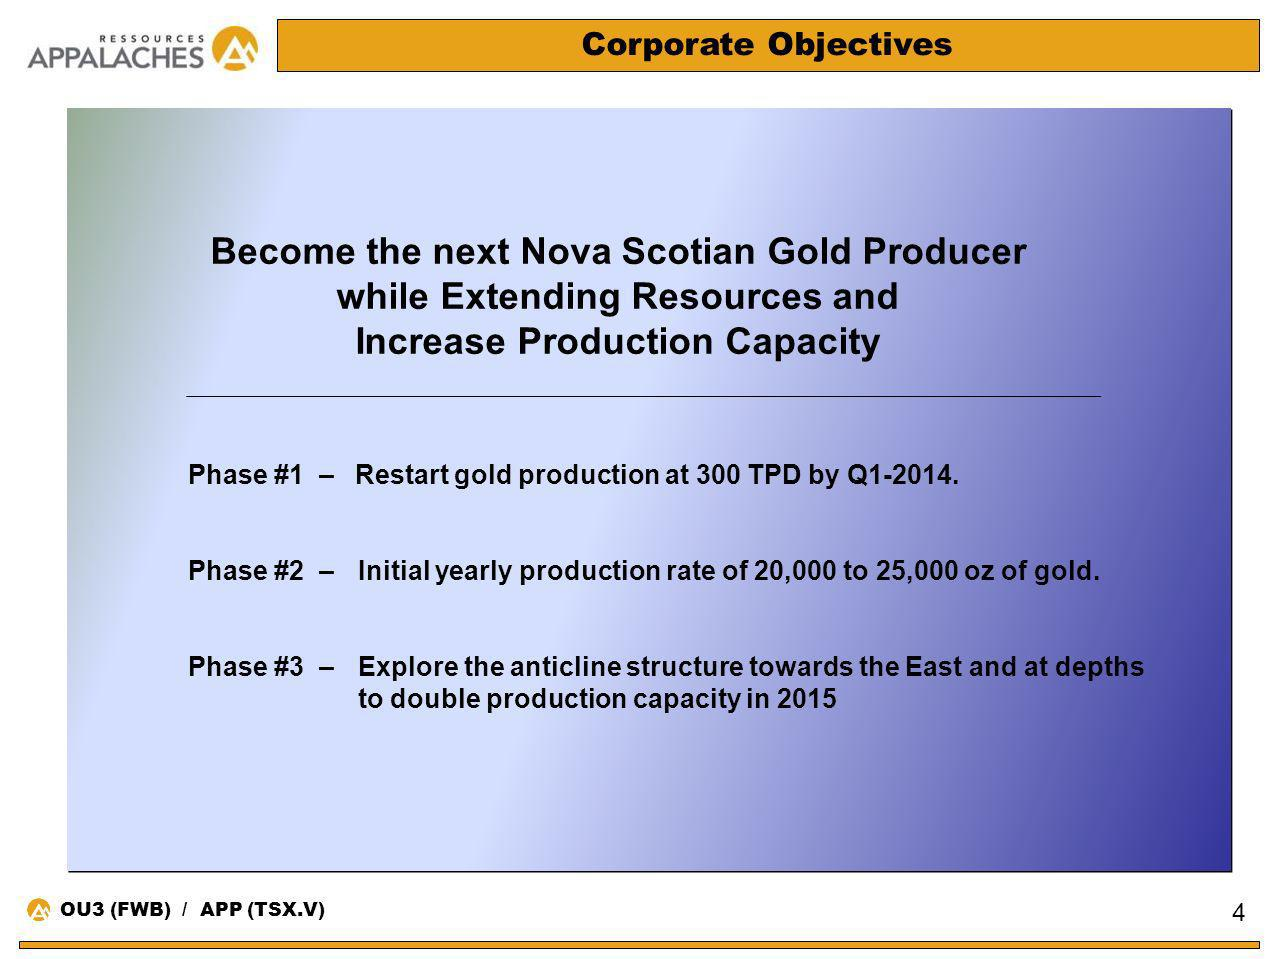 Become the next Nova Scotian Gold Producer